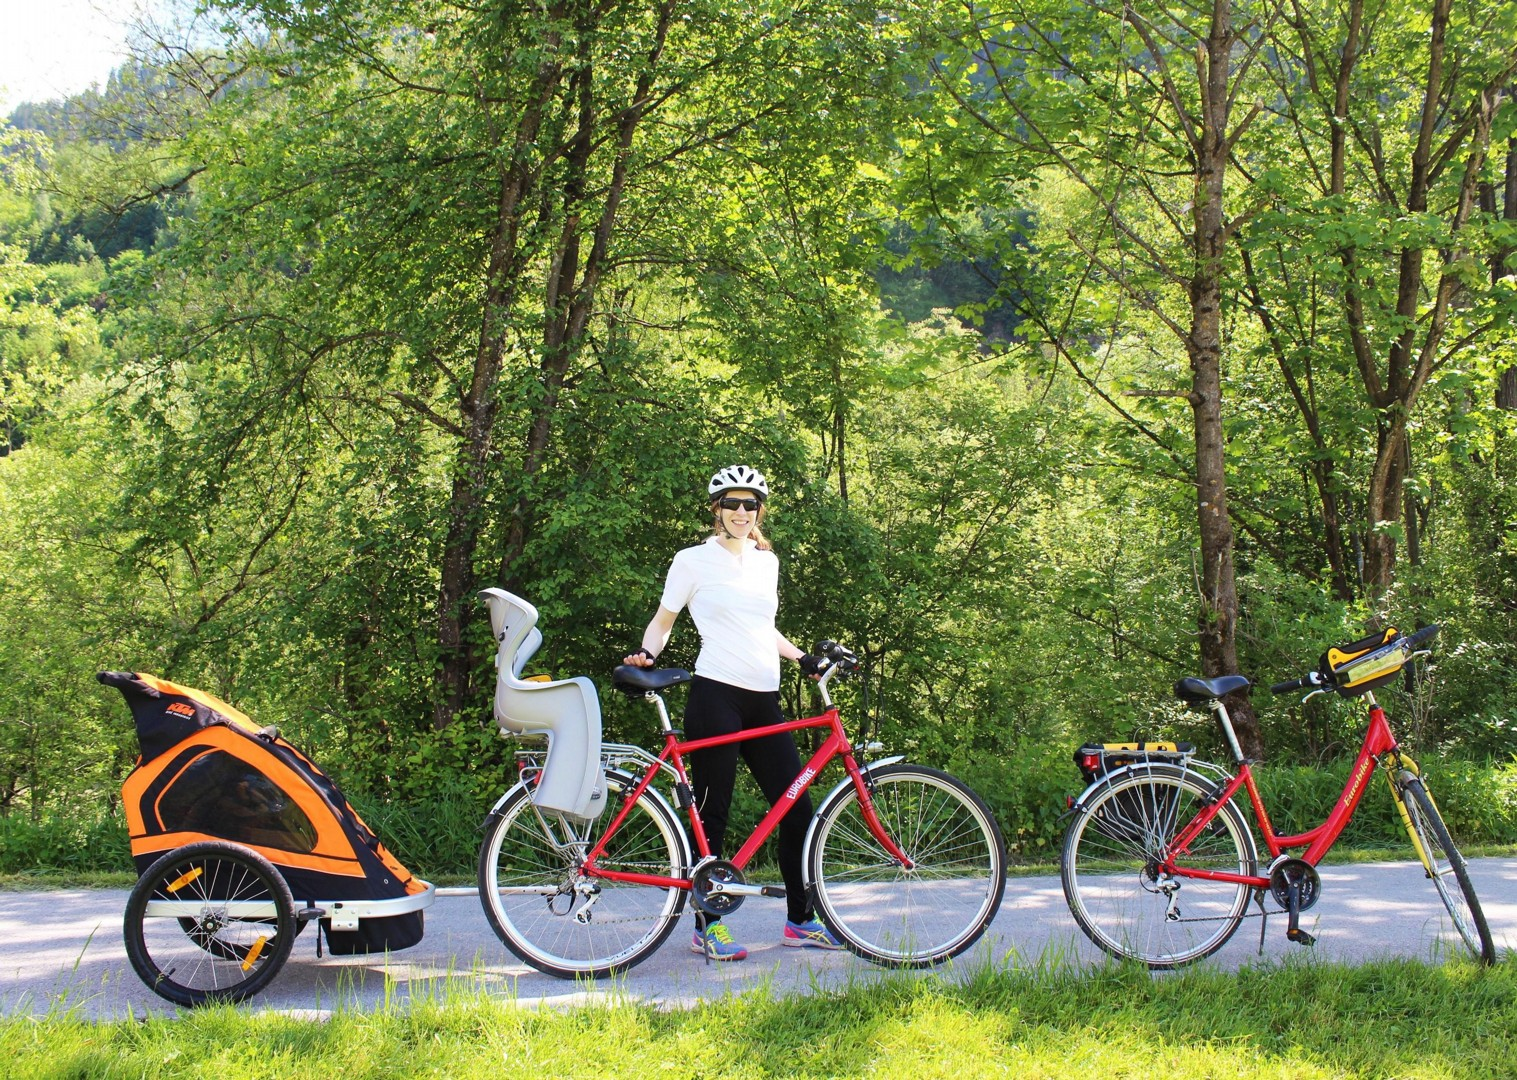 cycling-for-all-the-family-children-bikes-austria-tauern-valleys.jpg - Austria - Tauern Valleys - Self-Guided Family Cycling Holiday - Family Cycling